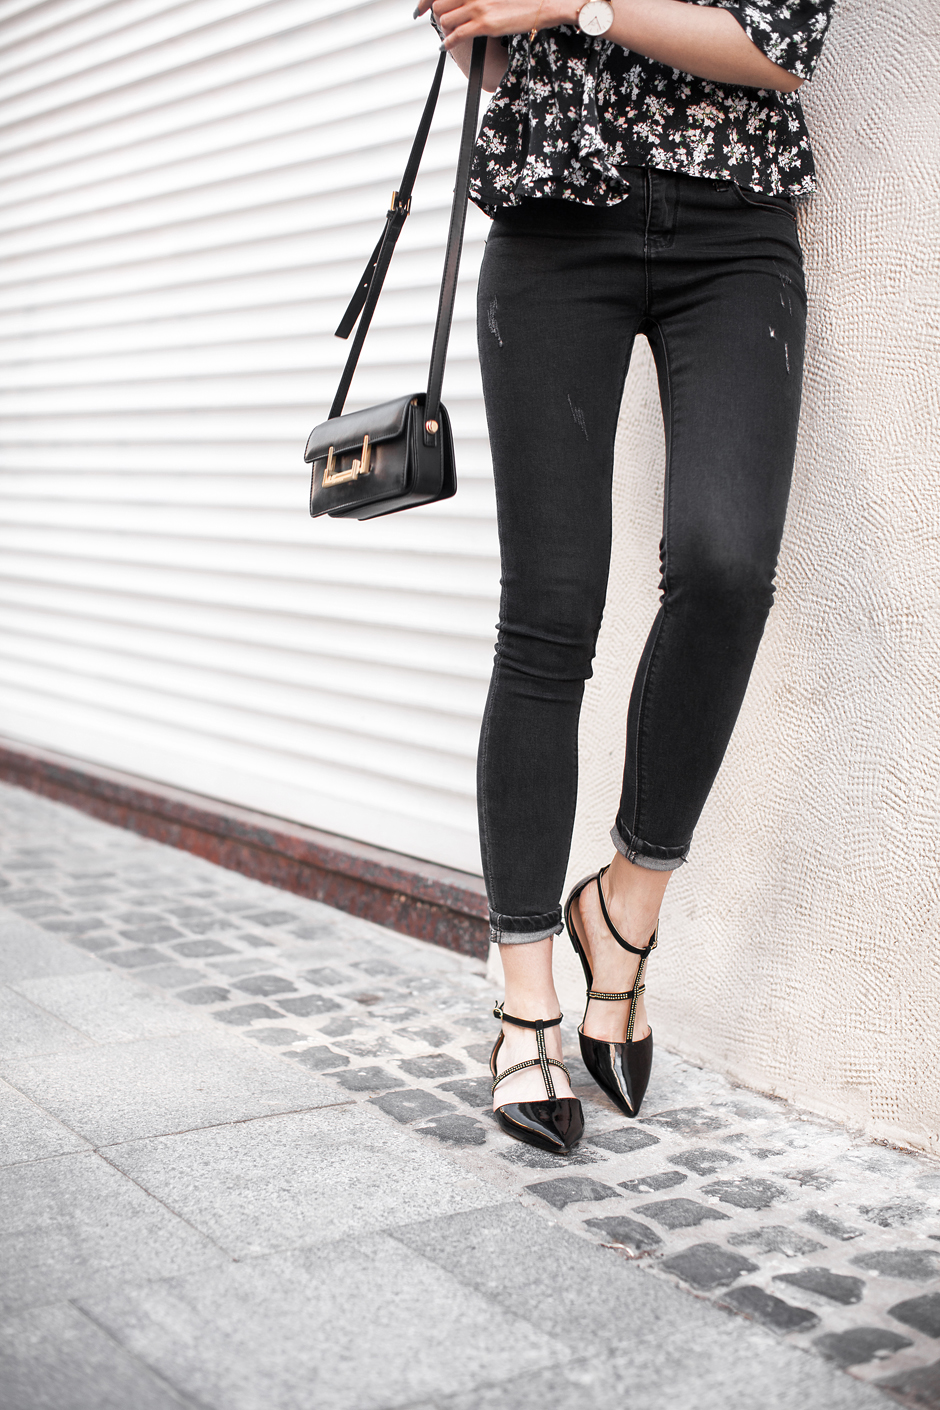 how-to-wear-skinny-jeans-with-flats-outfit-ideas